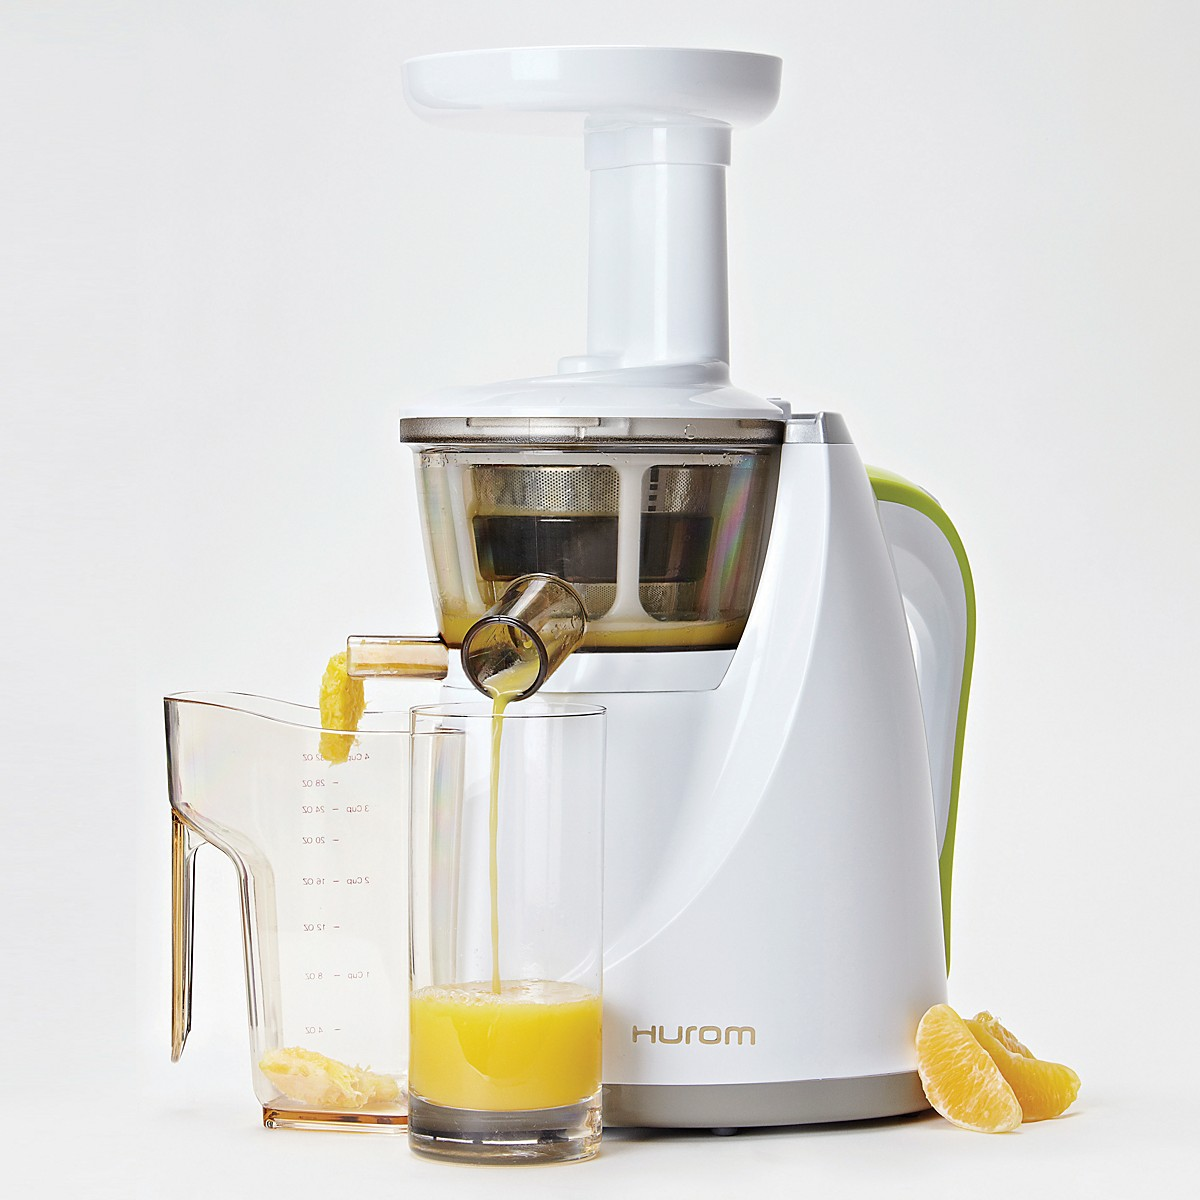 Hurom Slow Juicer Orange Juice : The Wish List 2014 Our favourite kitchen appliances for chefs and avid home cooks